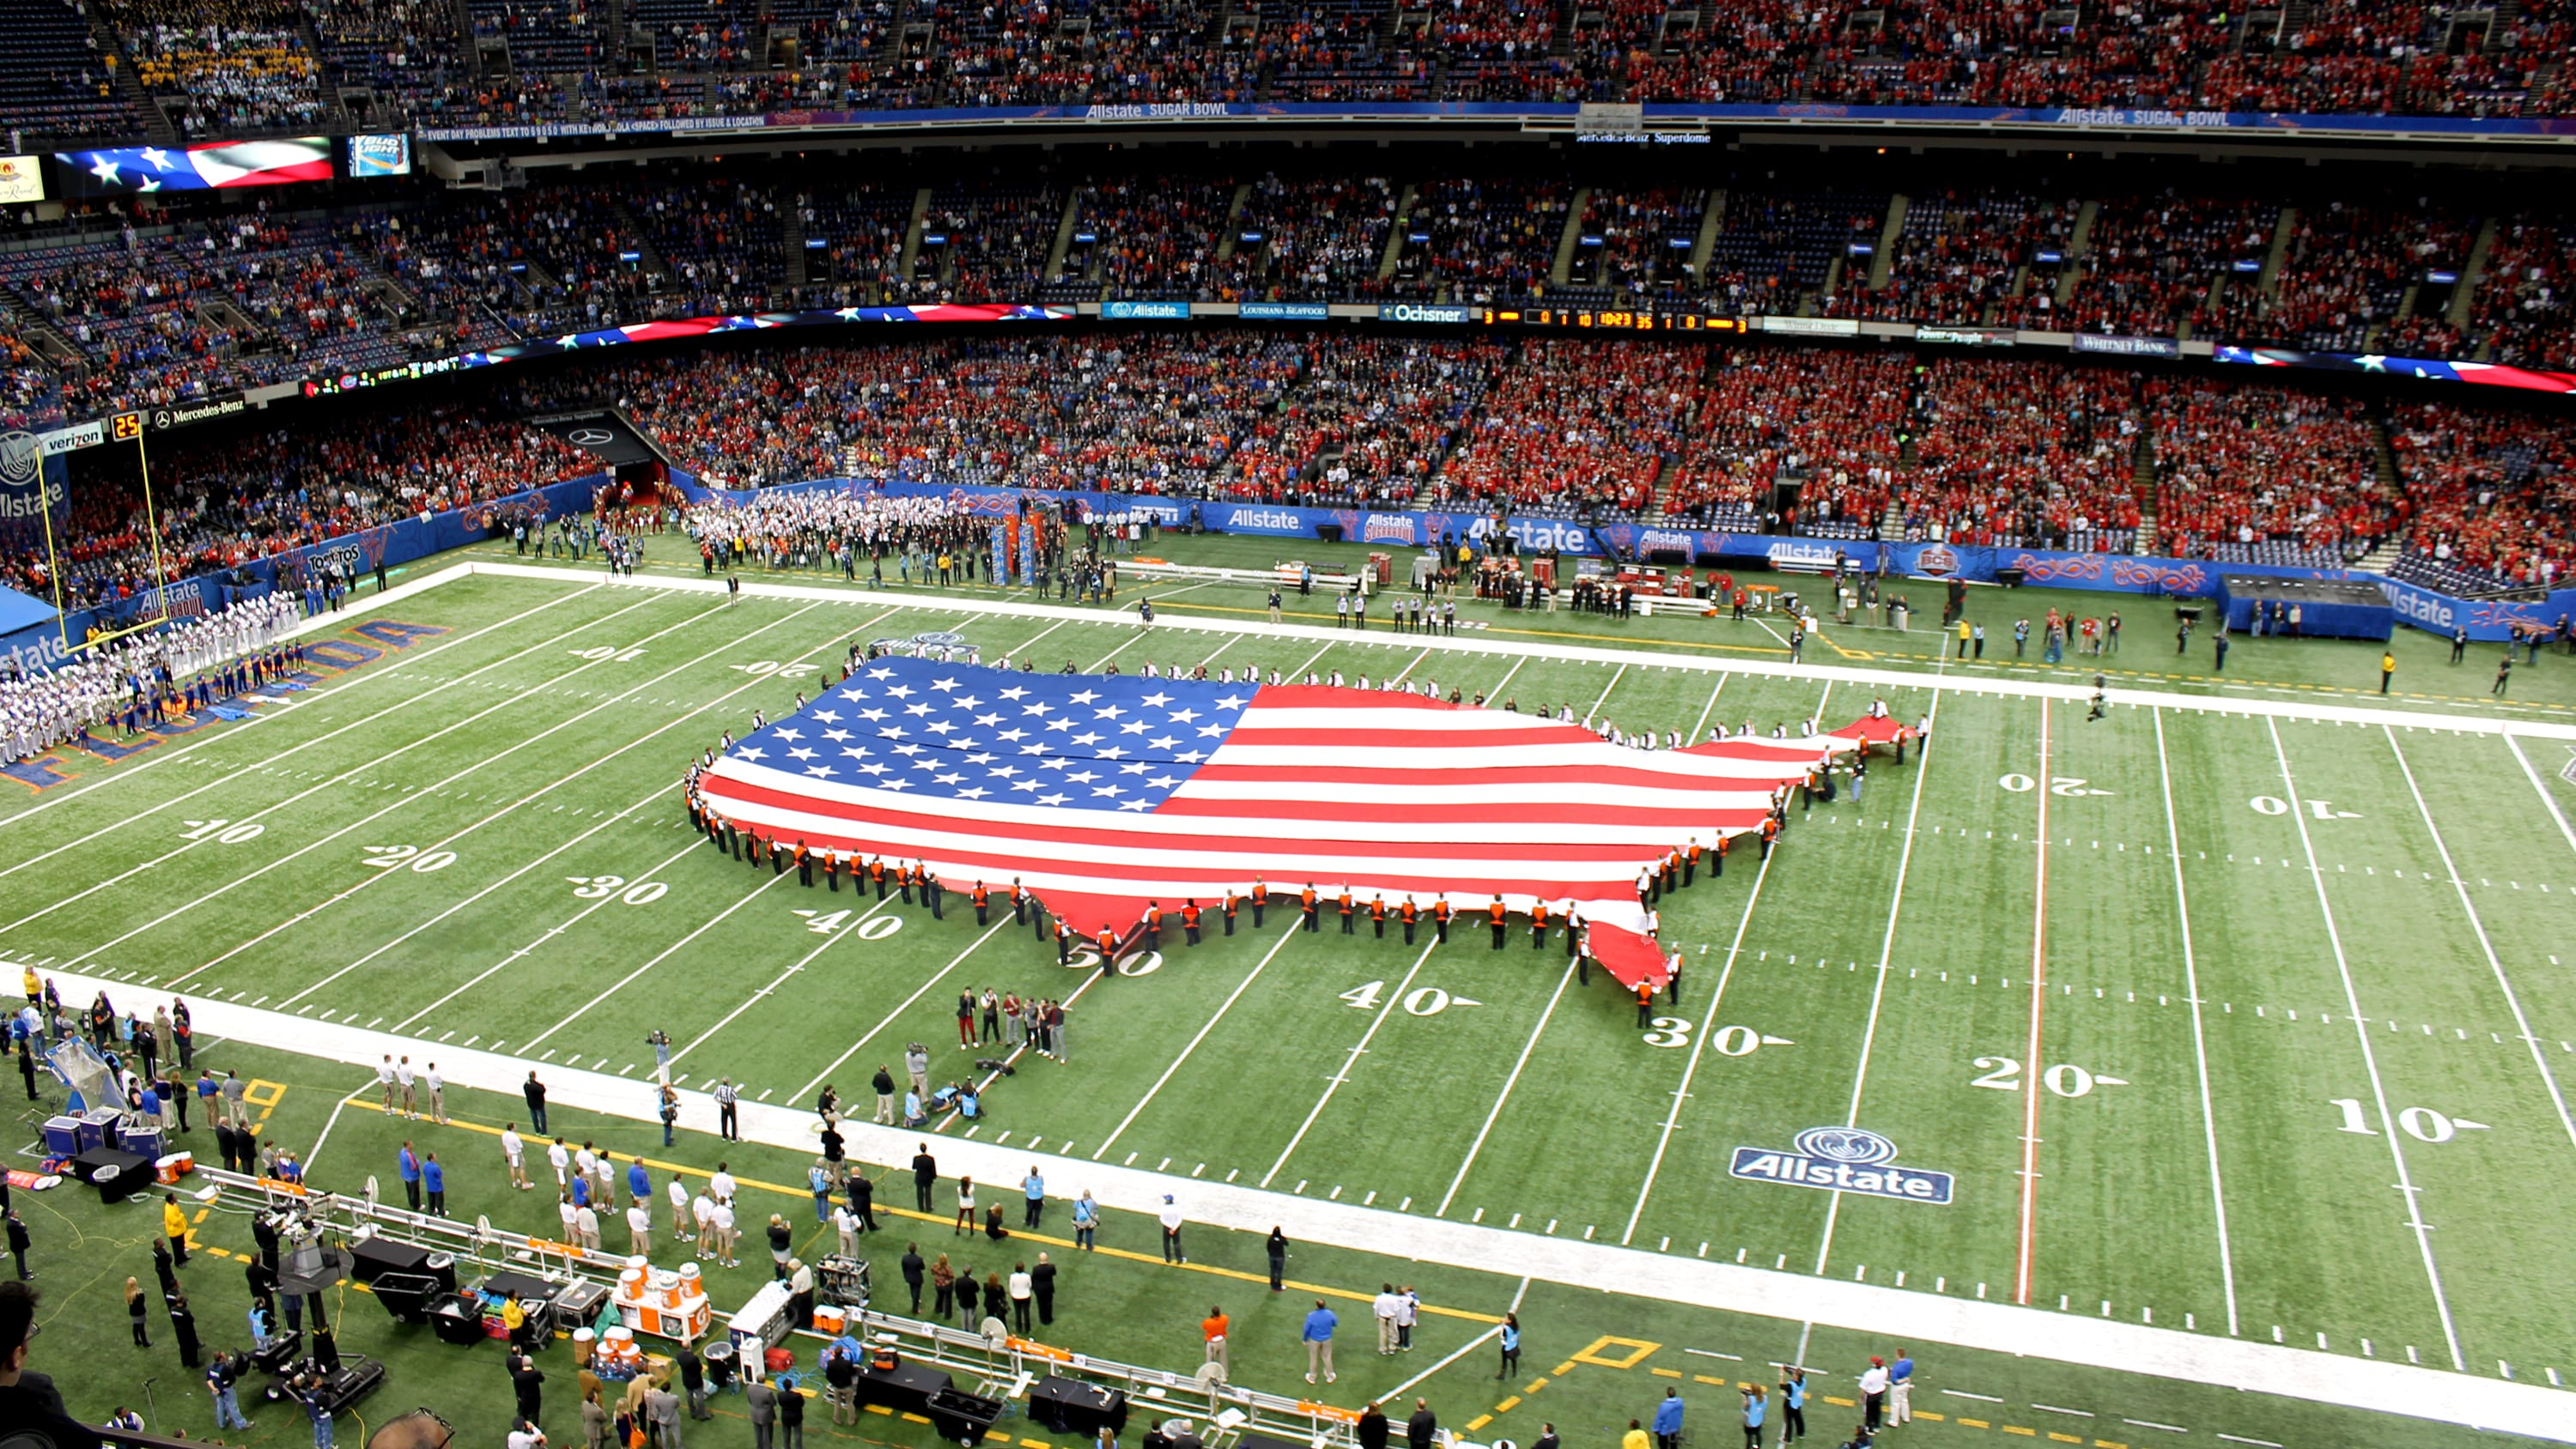 Students can perform at nationally acclaimed Bowl Games like the Sugar Bowl, Orange Bowl and Holiday Bowl